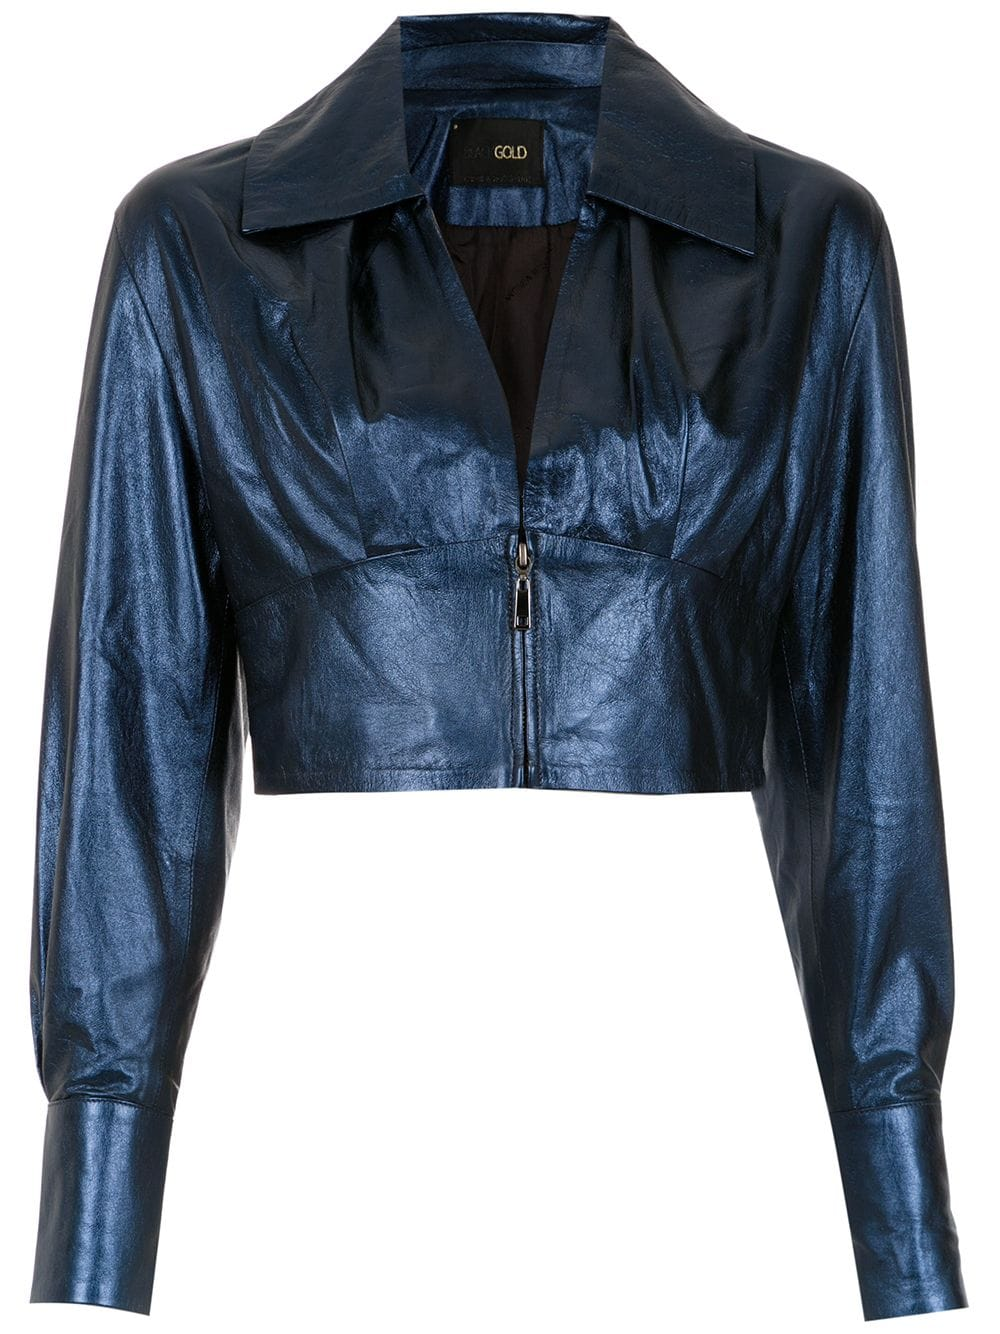 Fall Into Autumn 2019 colors, medium blue, blue depths, blue leather jacket